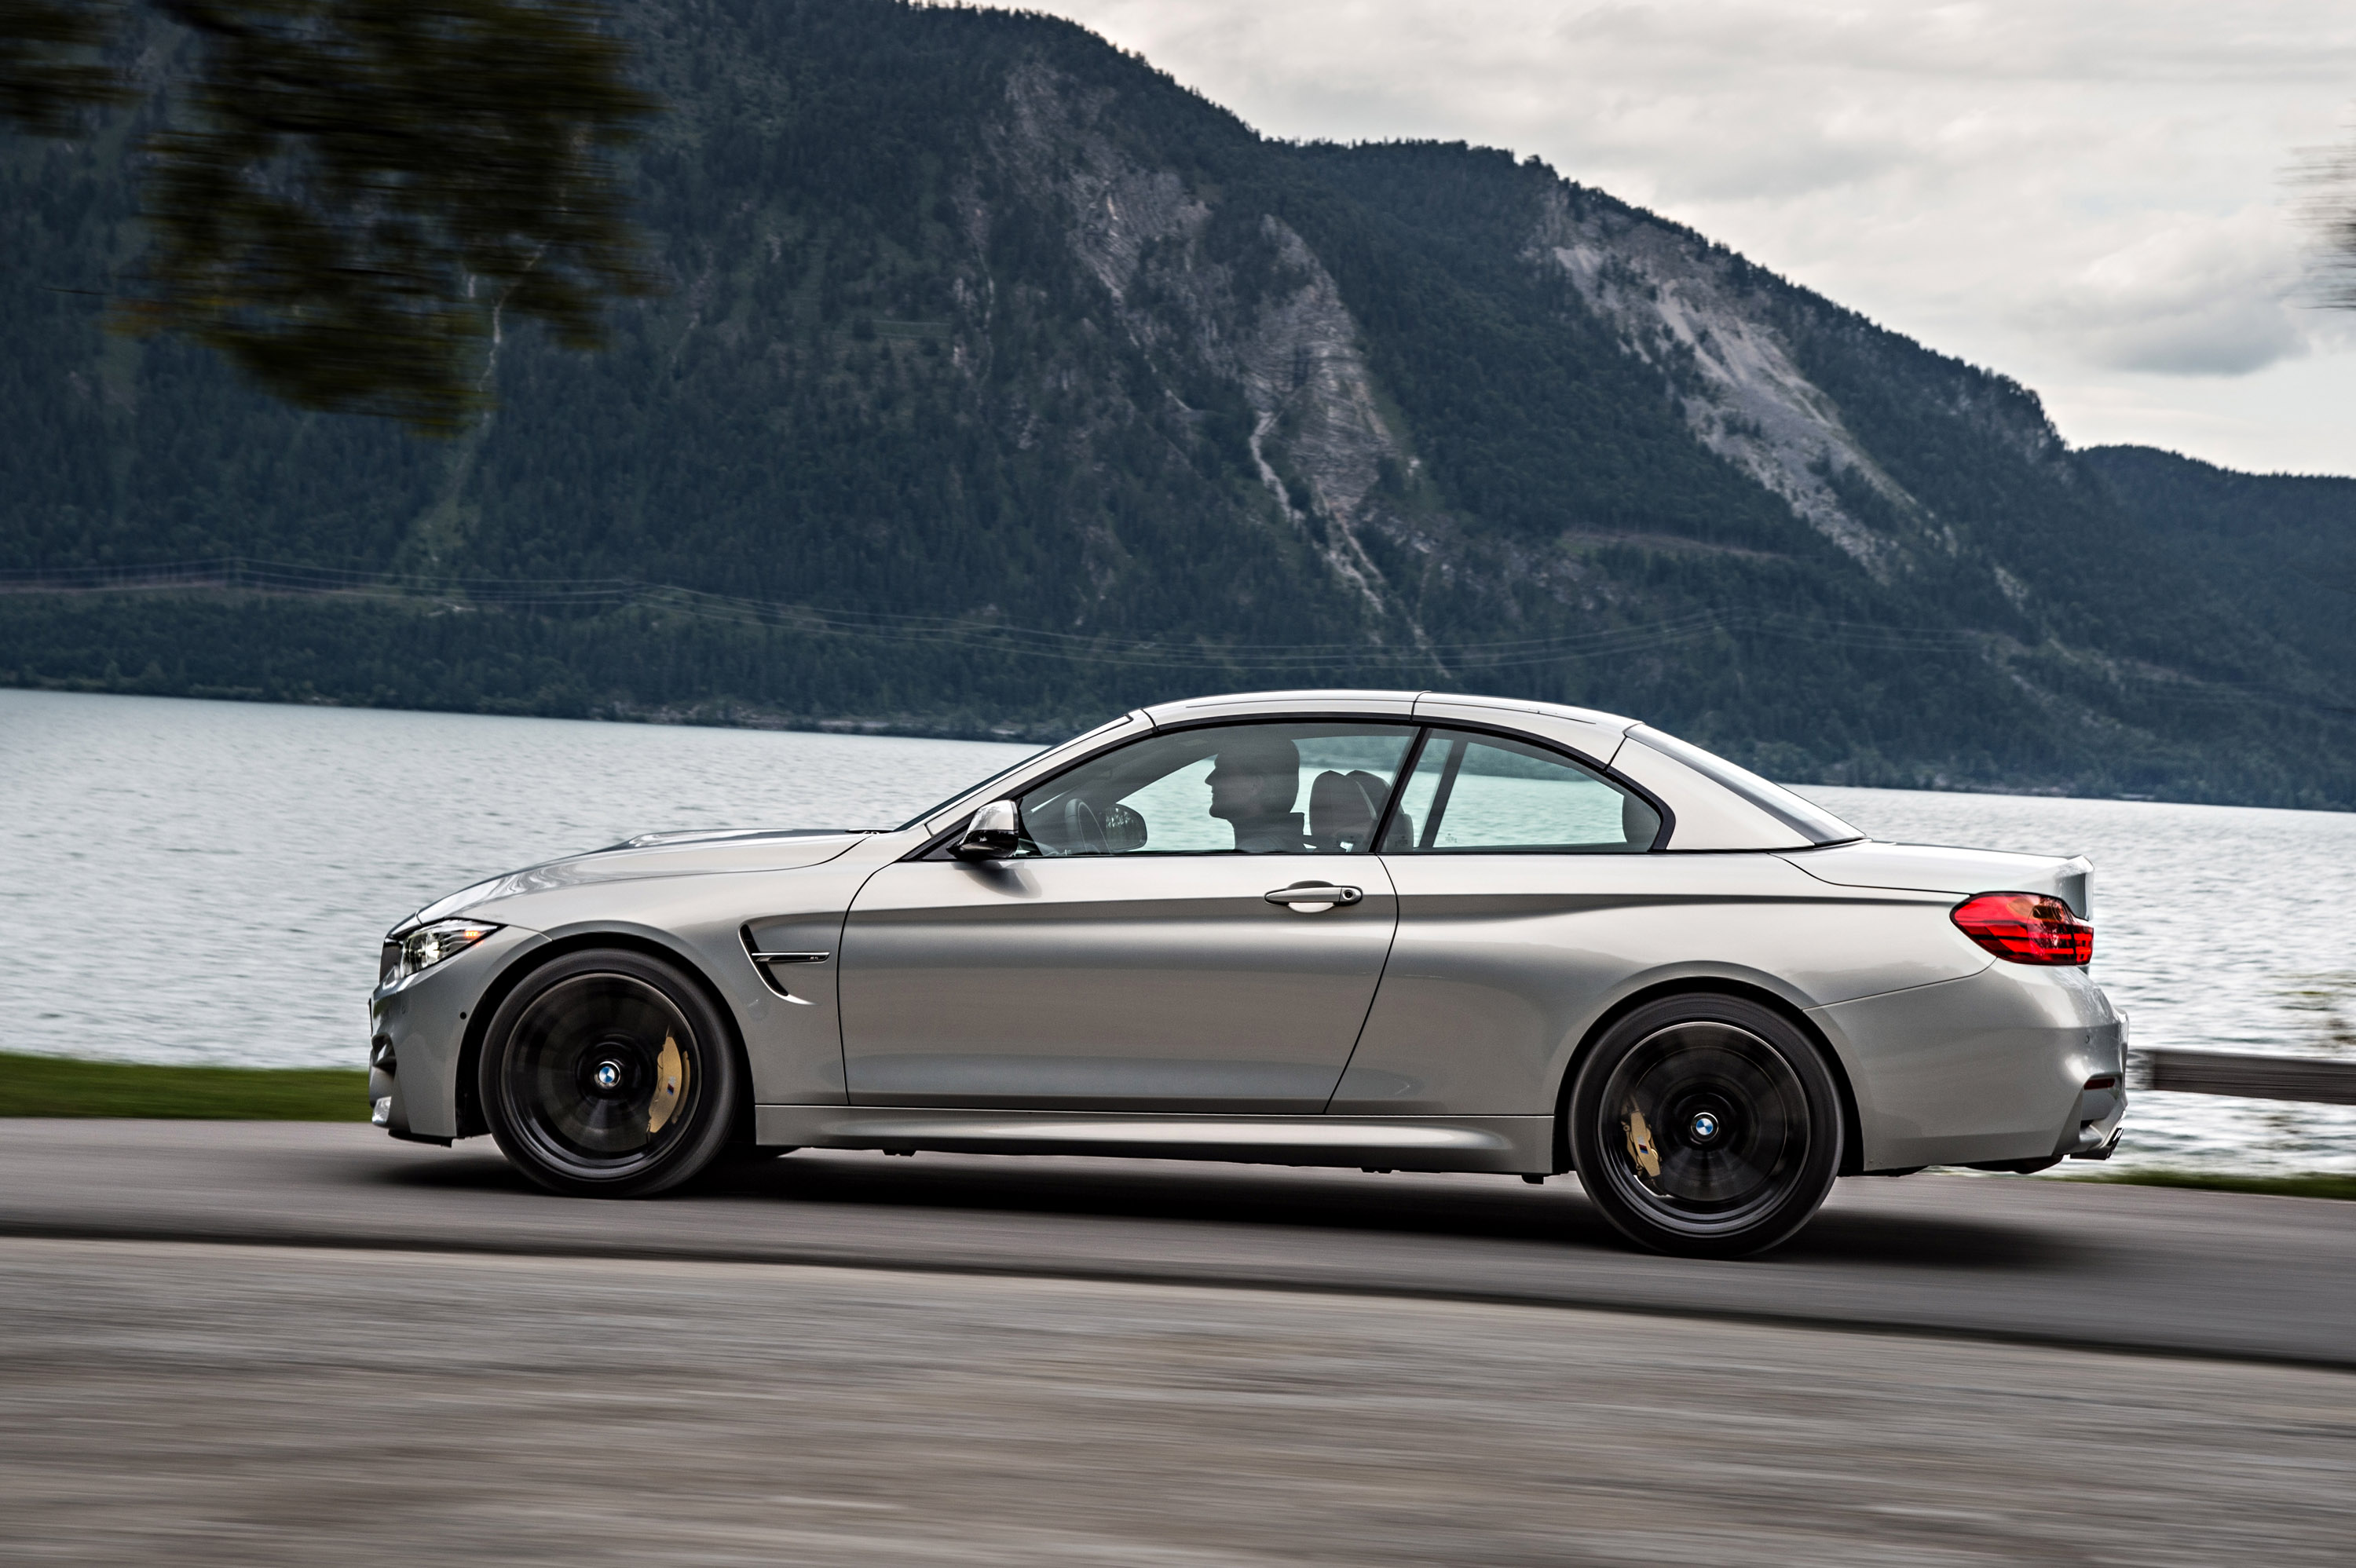 2015 Bmw F83 M4 Convertible Picture 109425